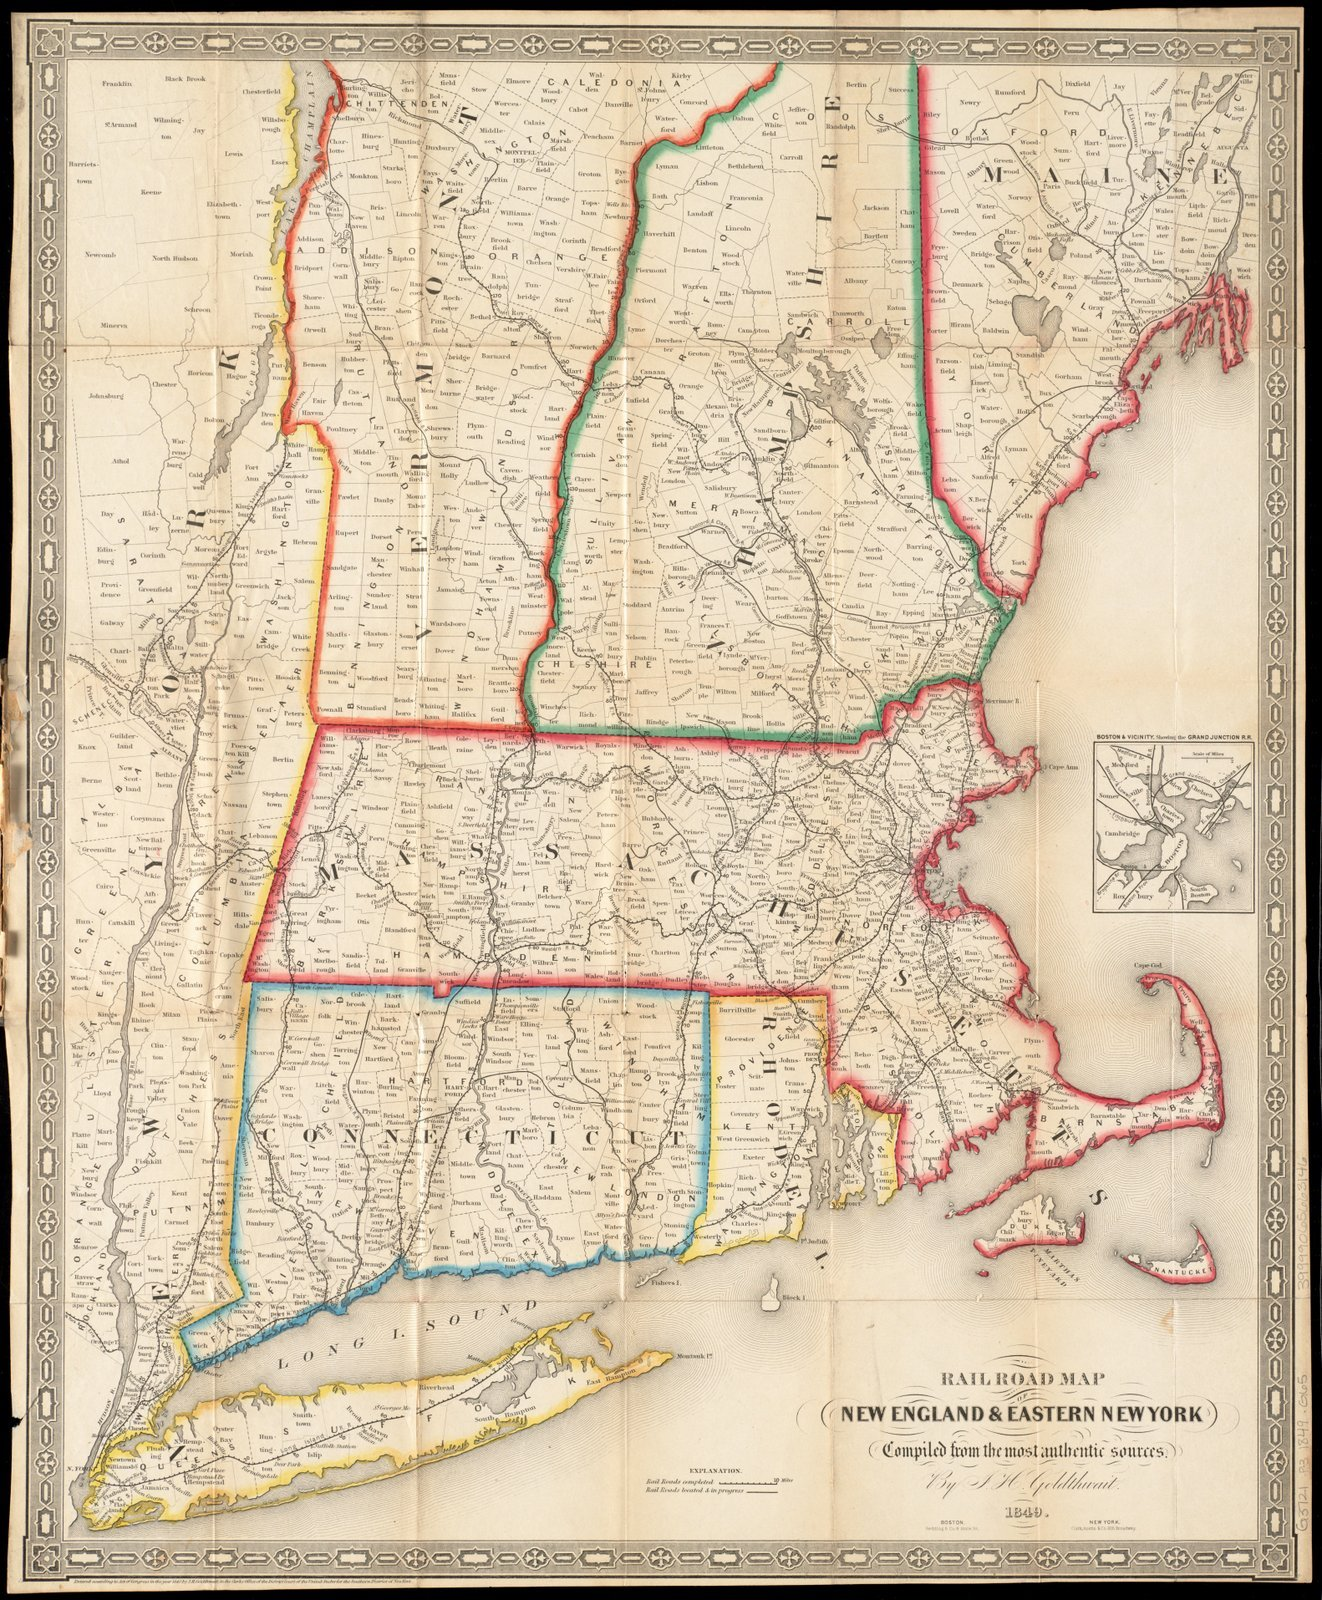 Historic Map   1849 Railroad map of New England & eastern New York complied from the most authentic sources   Antique Vintage Reproduction